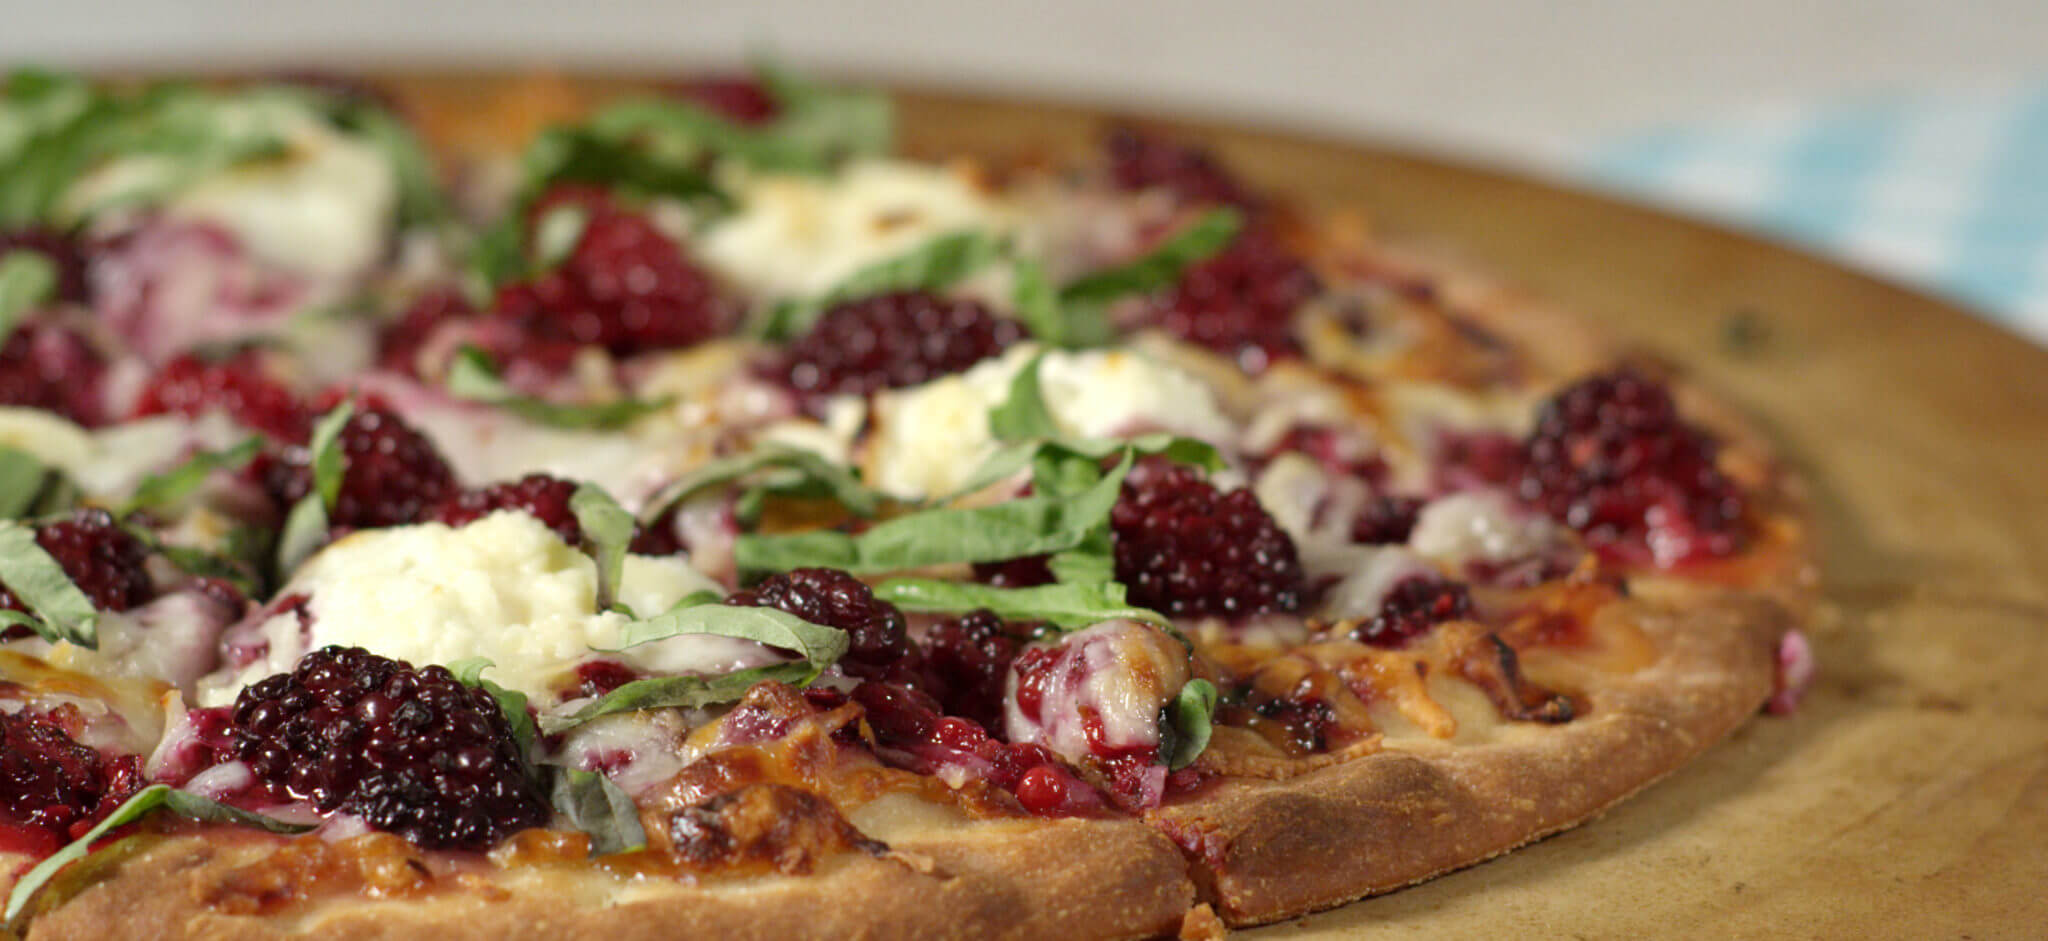 Blackberry Ricotta Flatbread